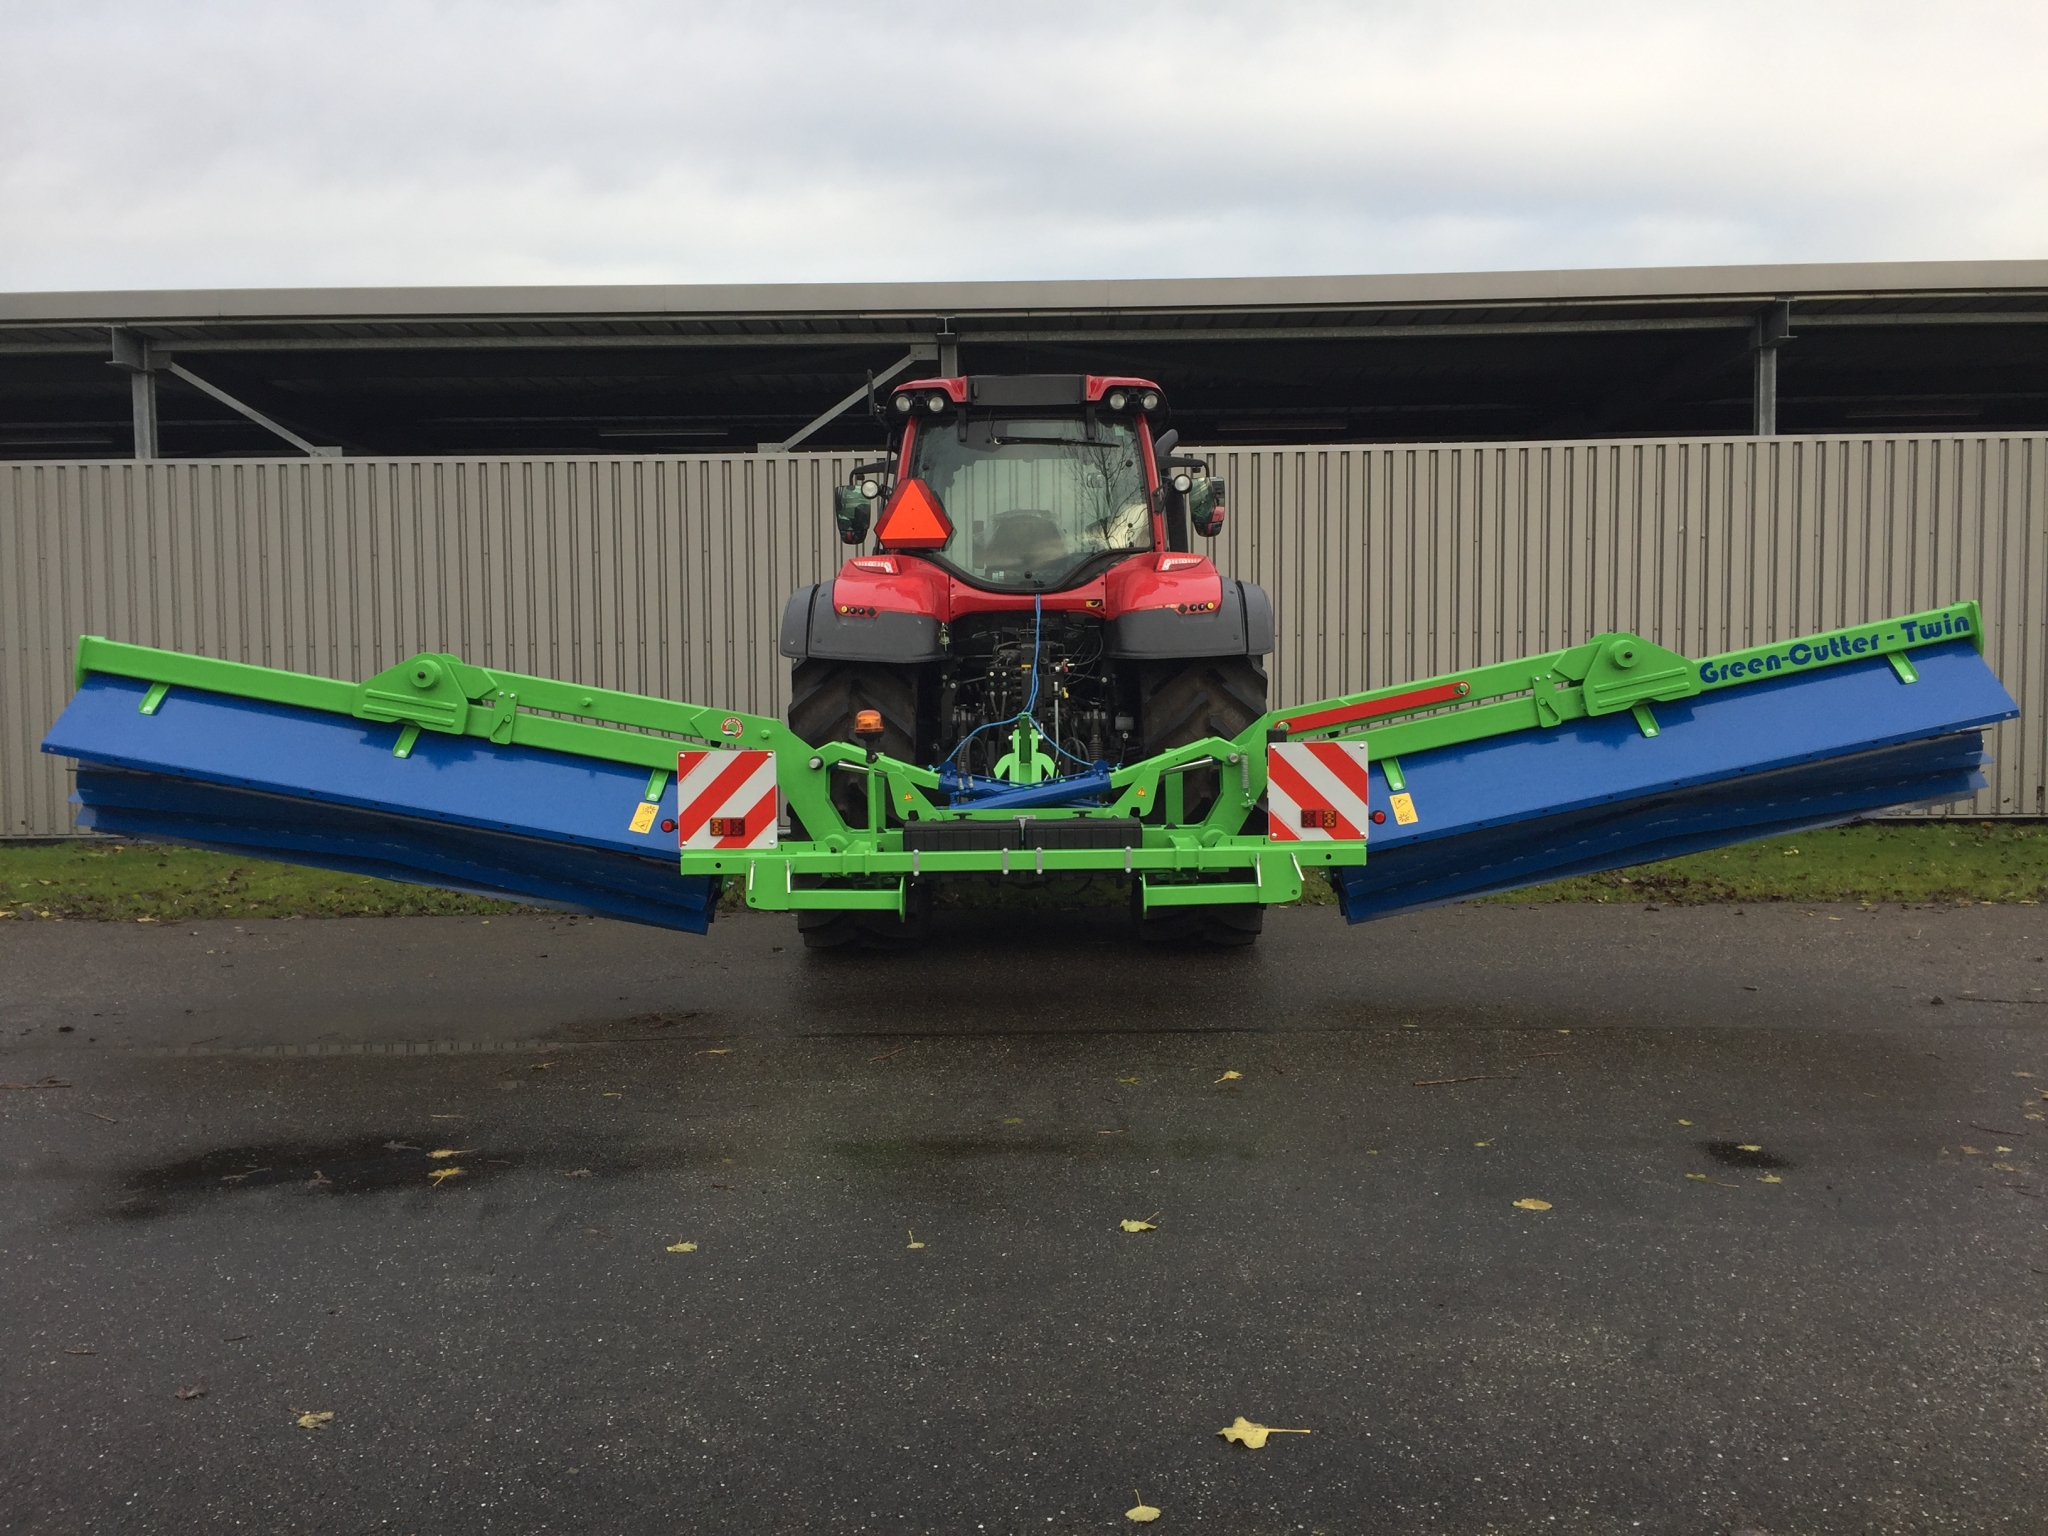 GreenCutter Twin Ceres